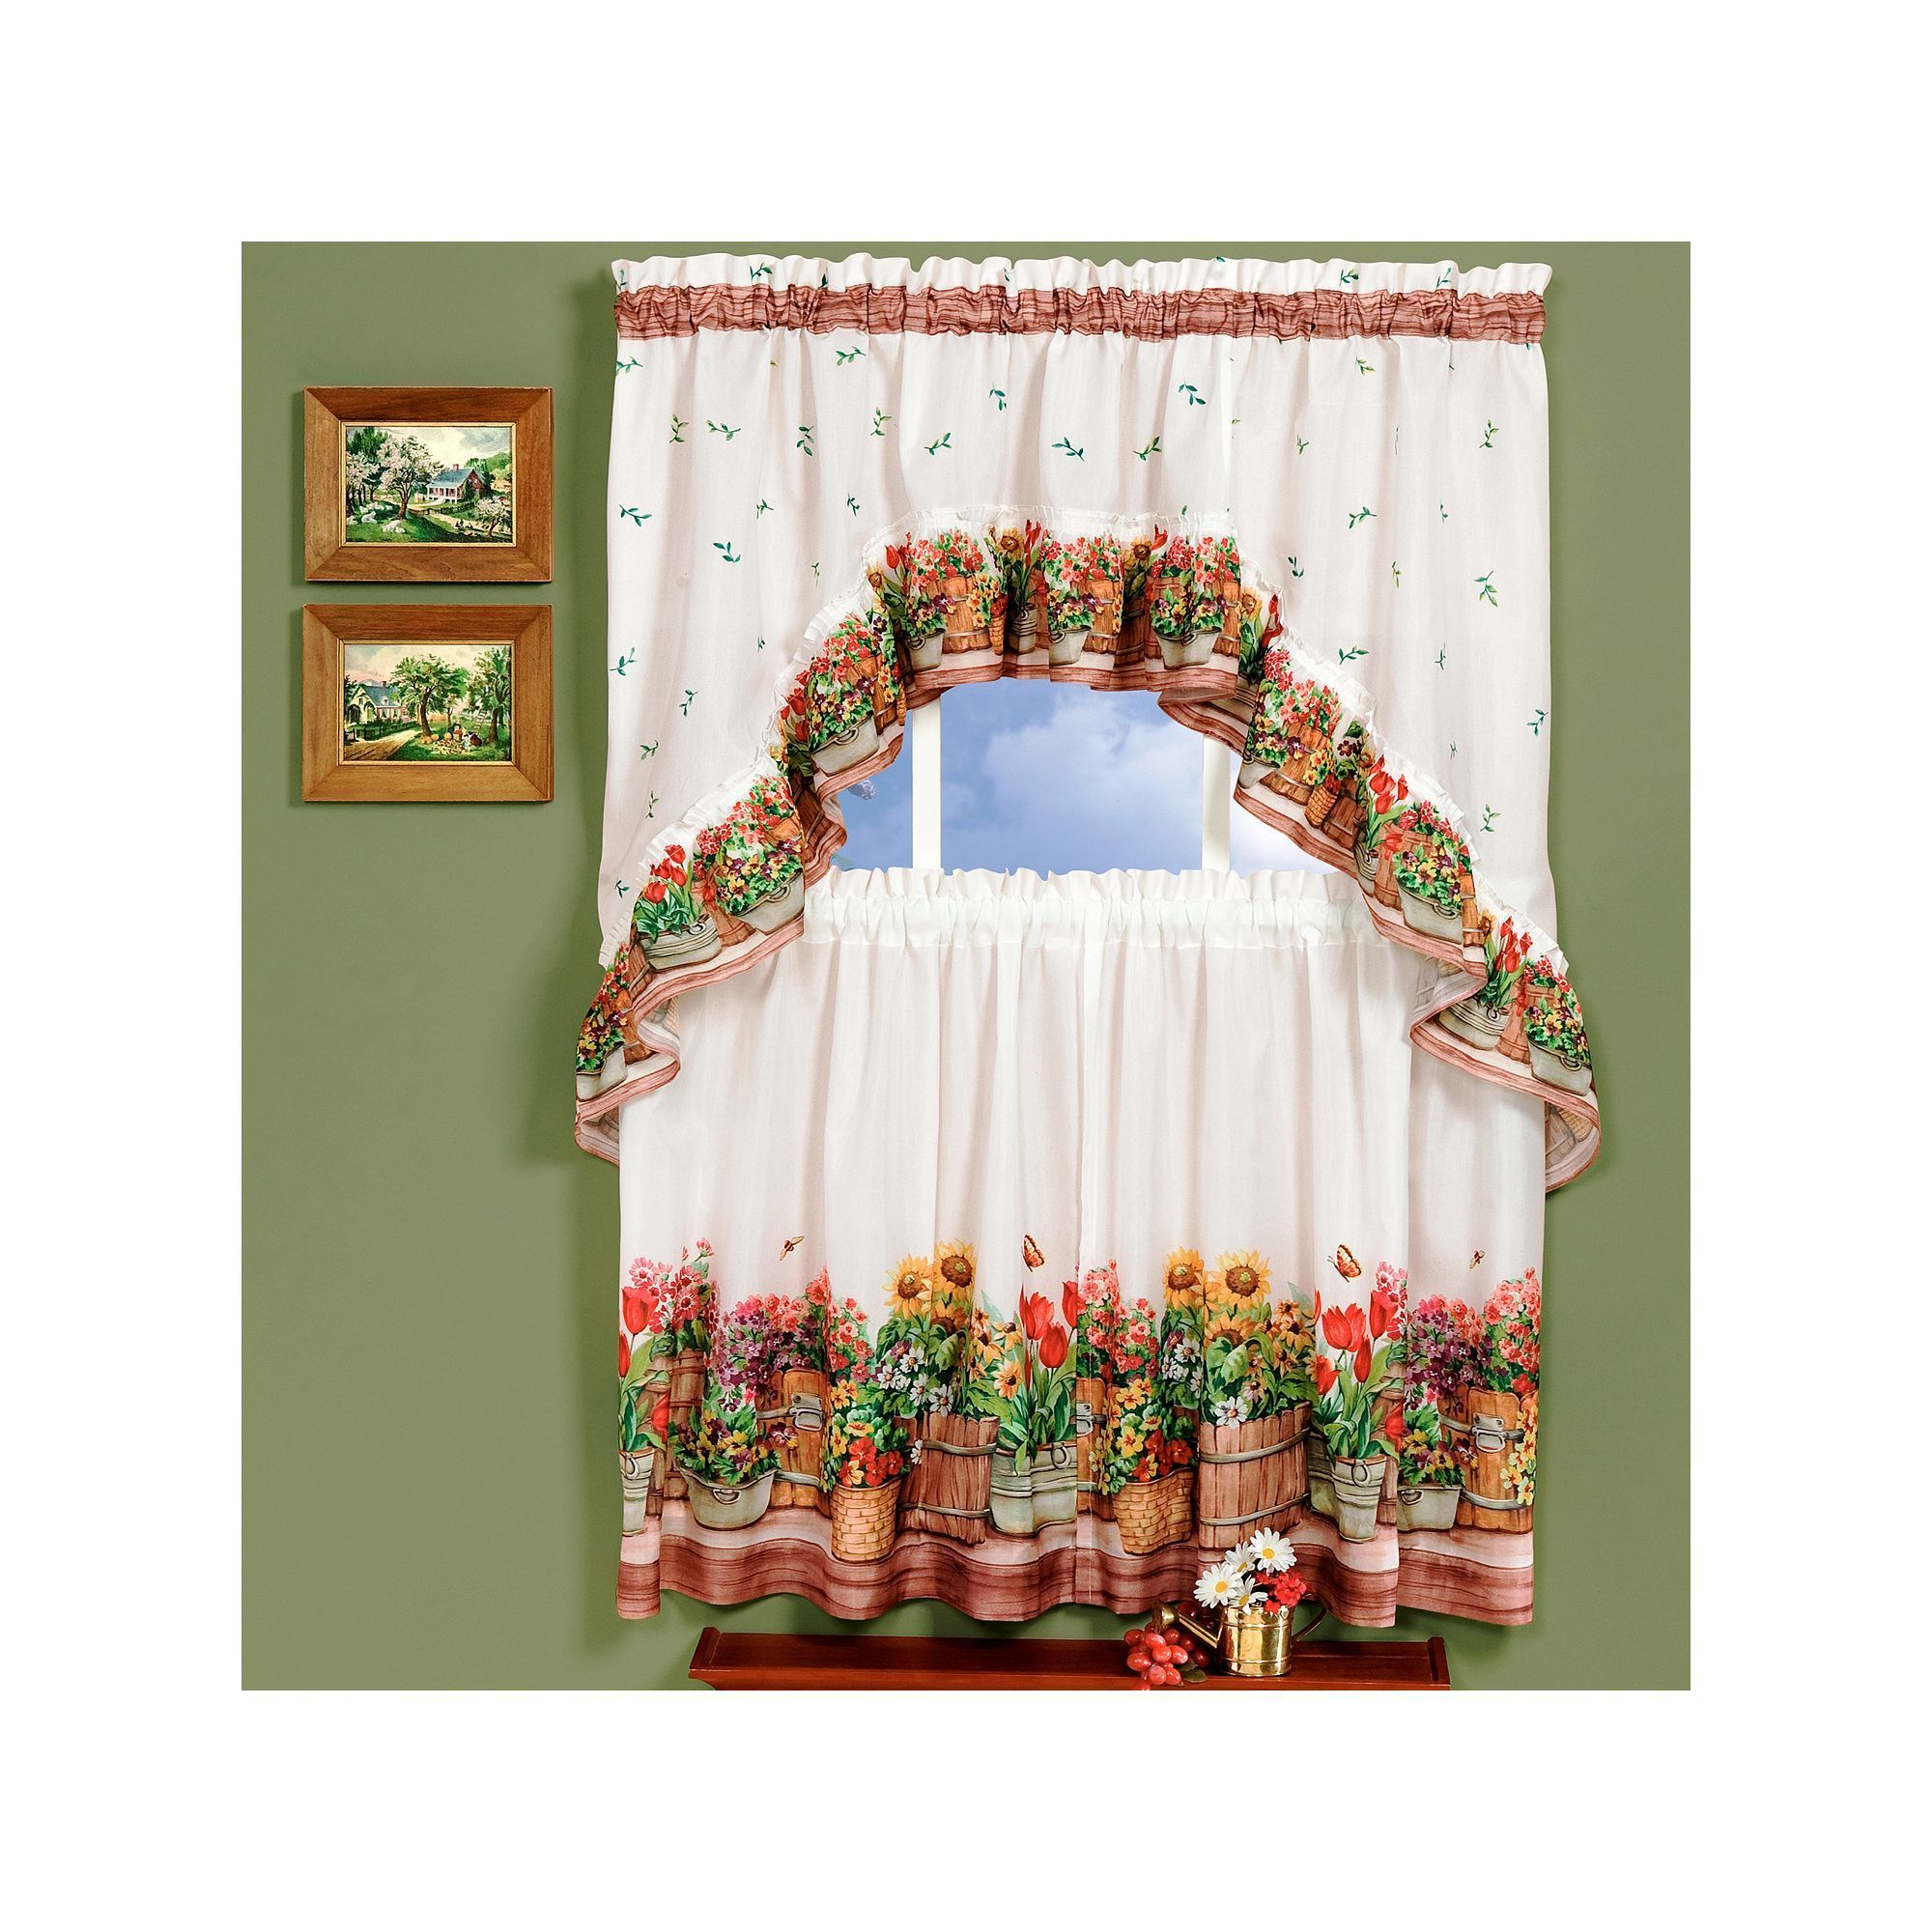 Cottage Ivy Curtain Tiers In Recent Country Garden 3 Piece Swag Tier Kitchen Window Curtain Set (View 11 of 20)